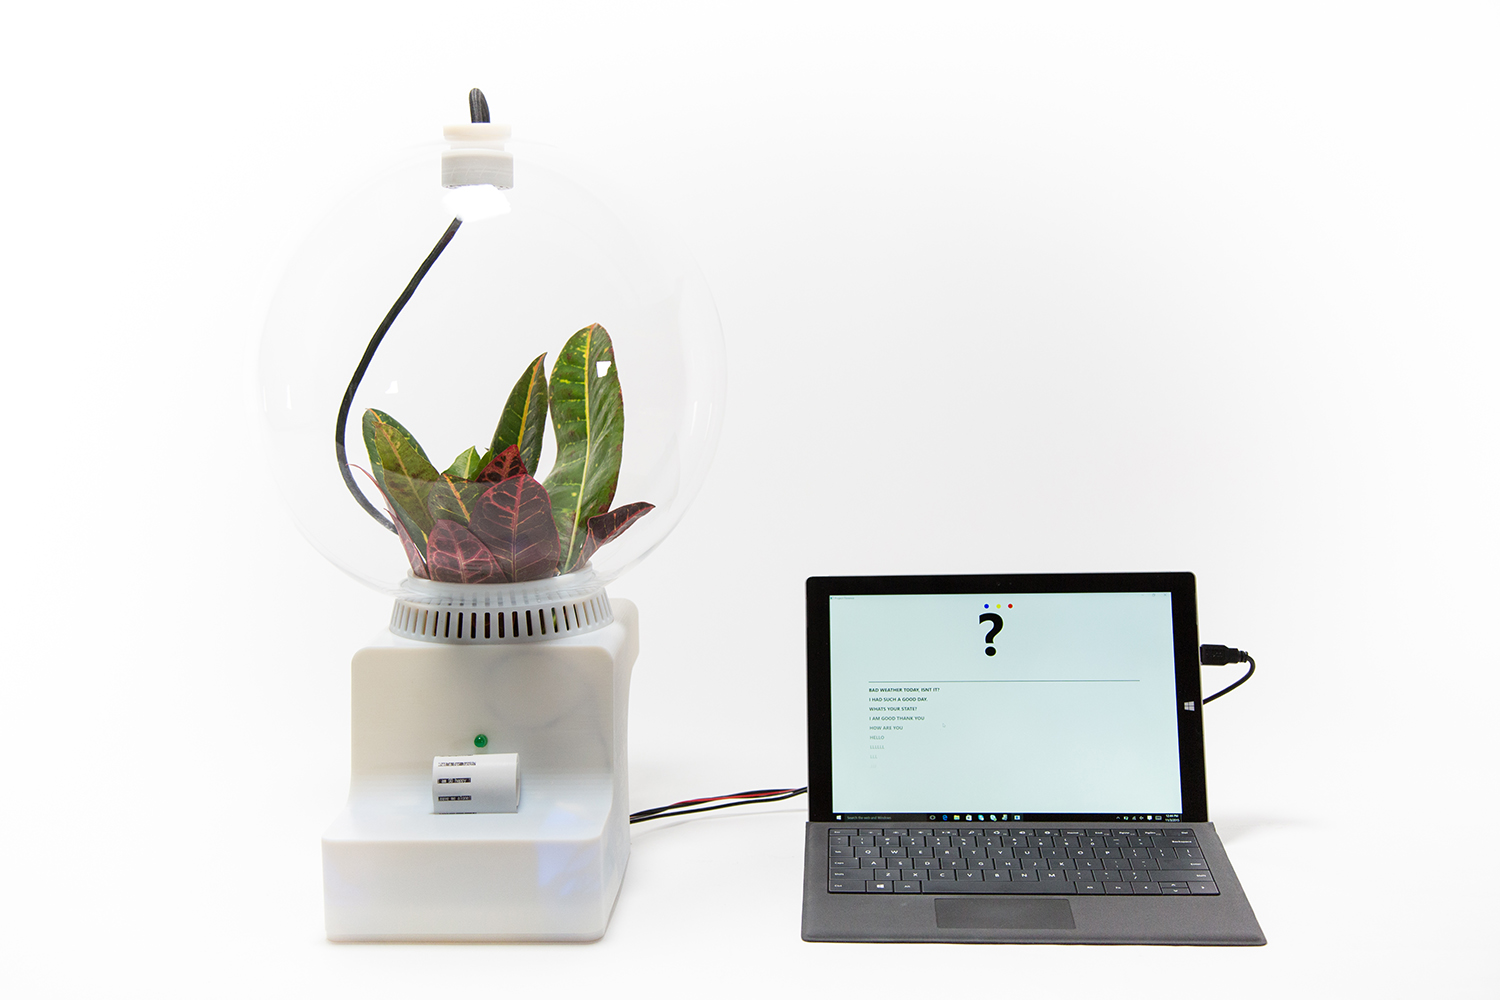 Plant Fever - Towards a psycho-centred design